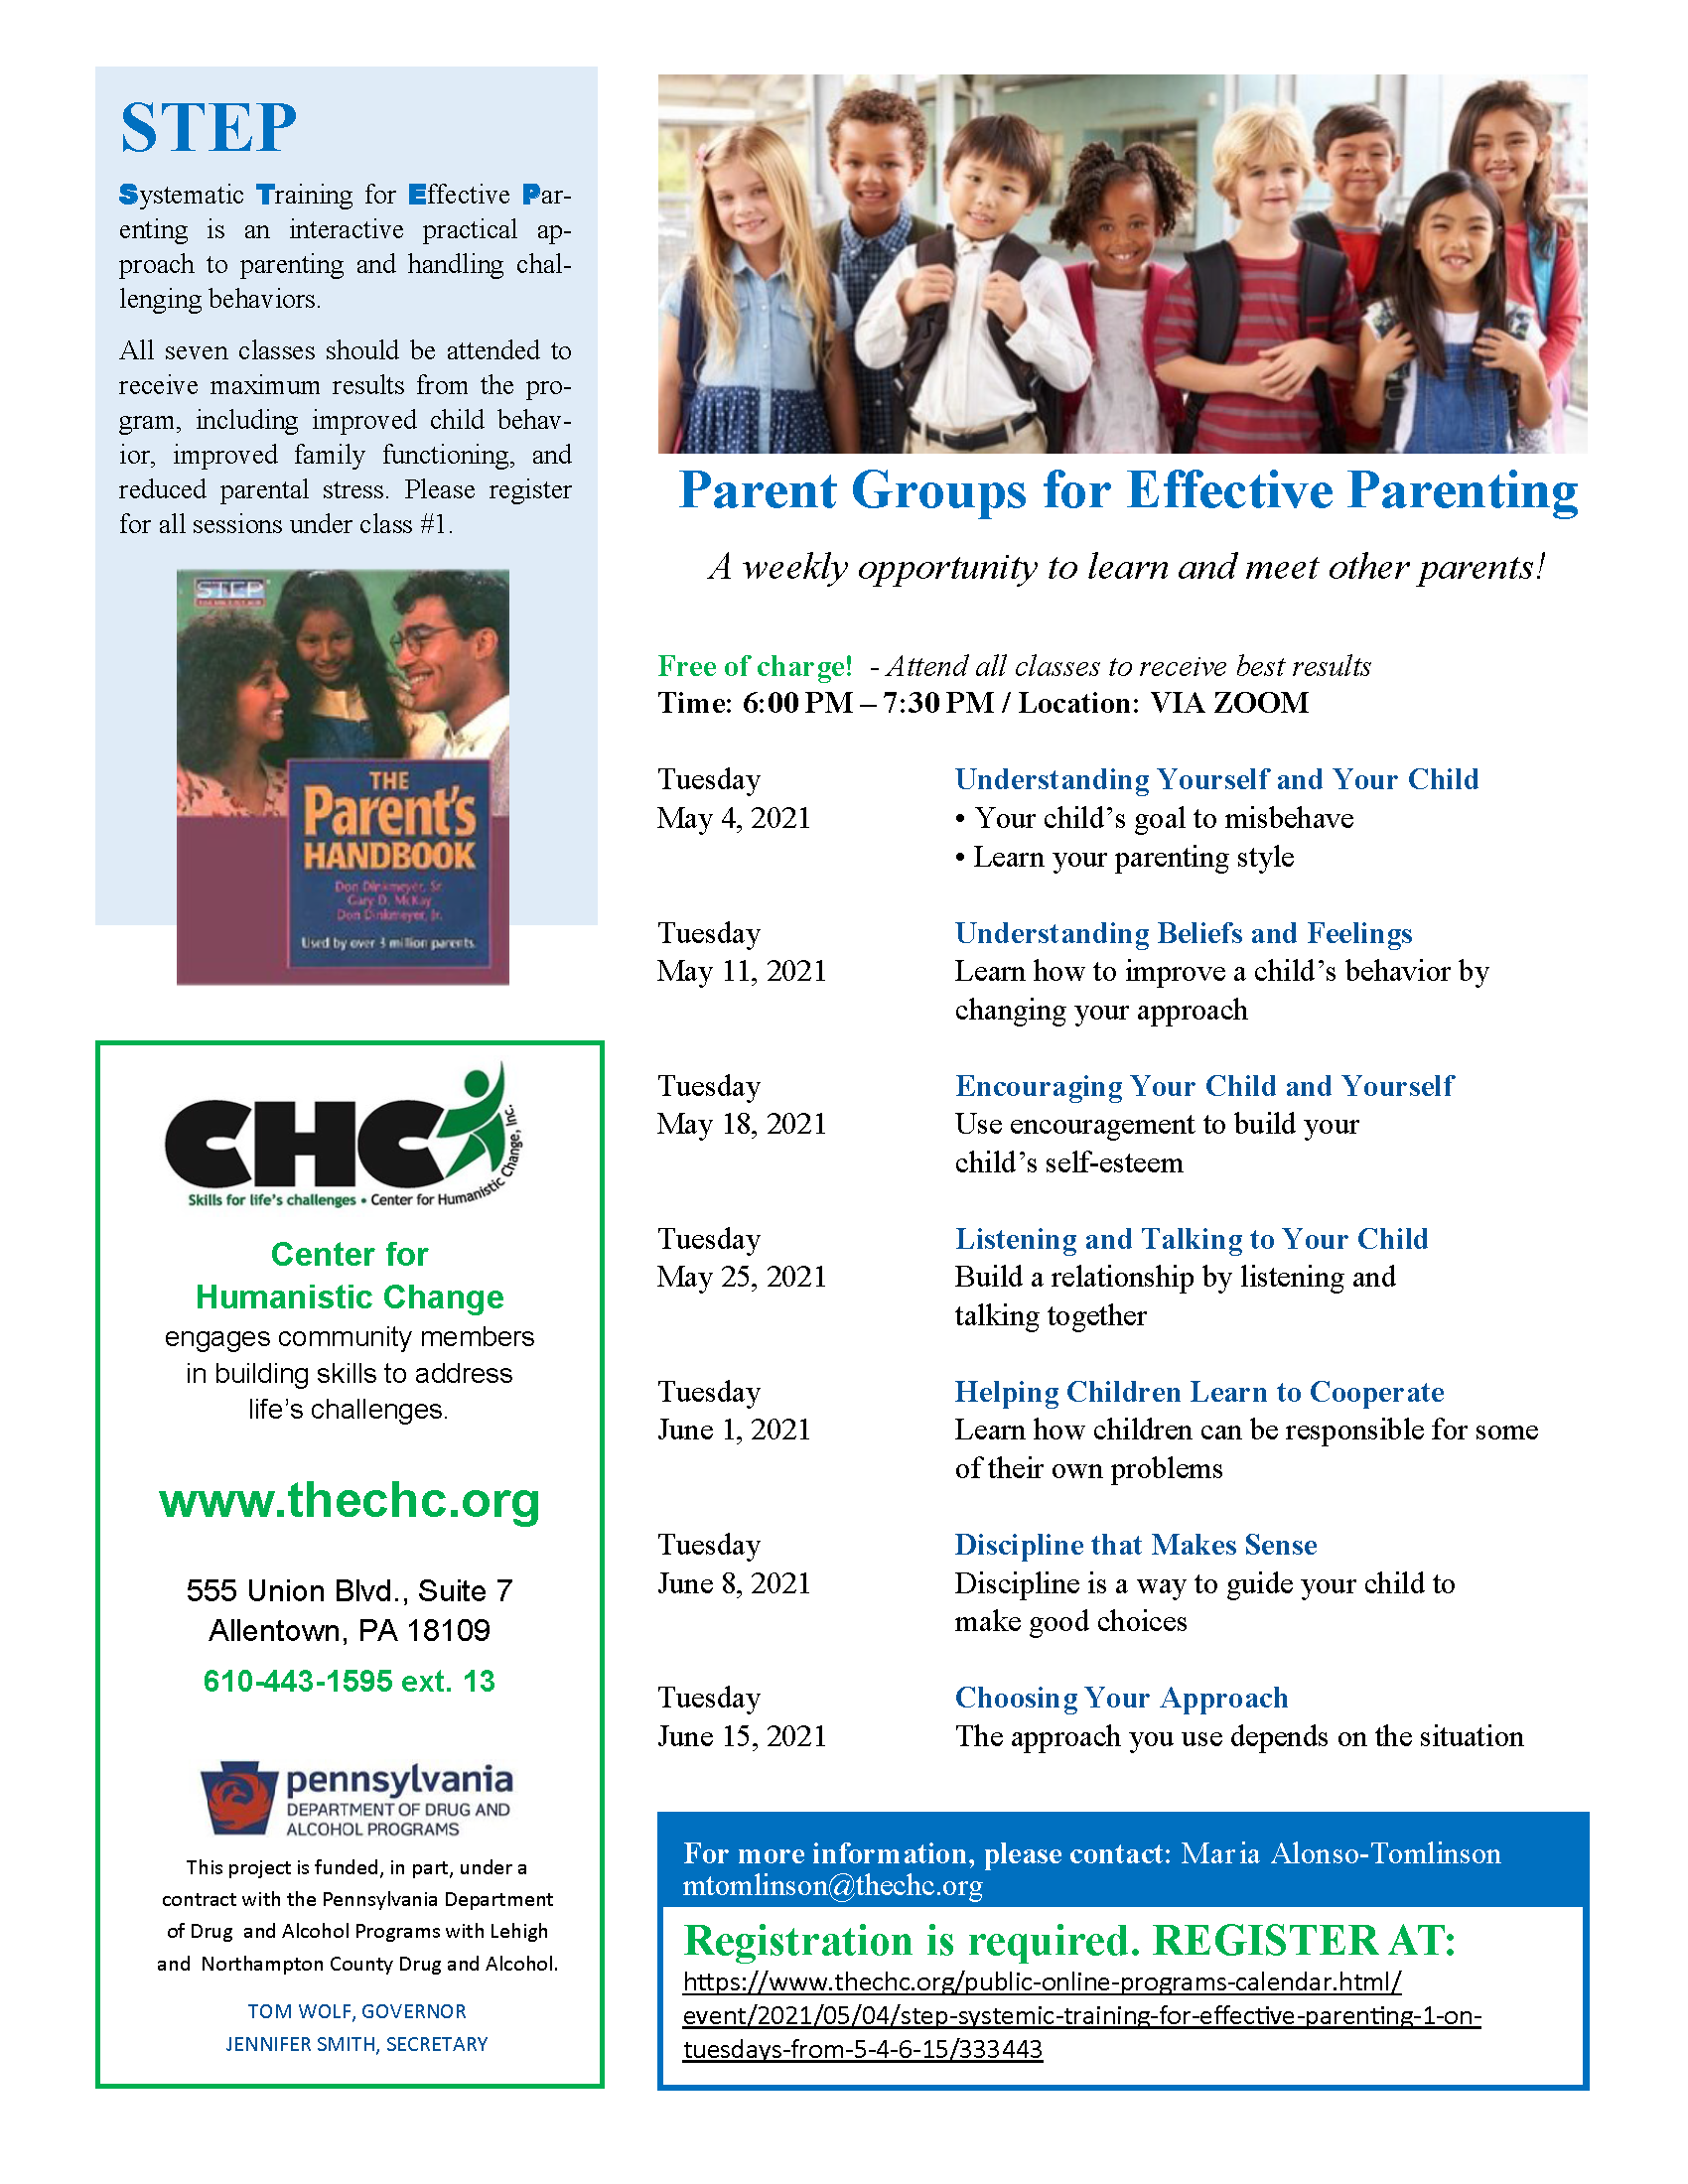 STEP: Systemic Training for Effective Parenting #5 on Tuesdays from 5/4-6/15